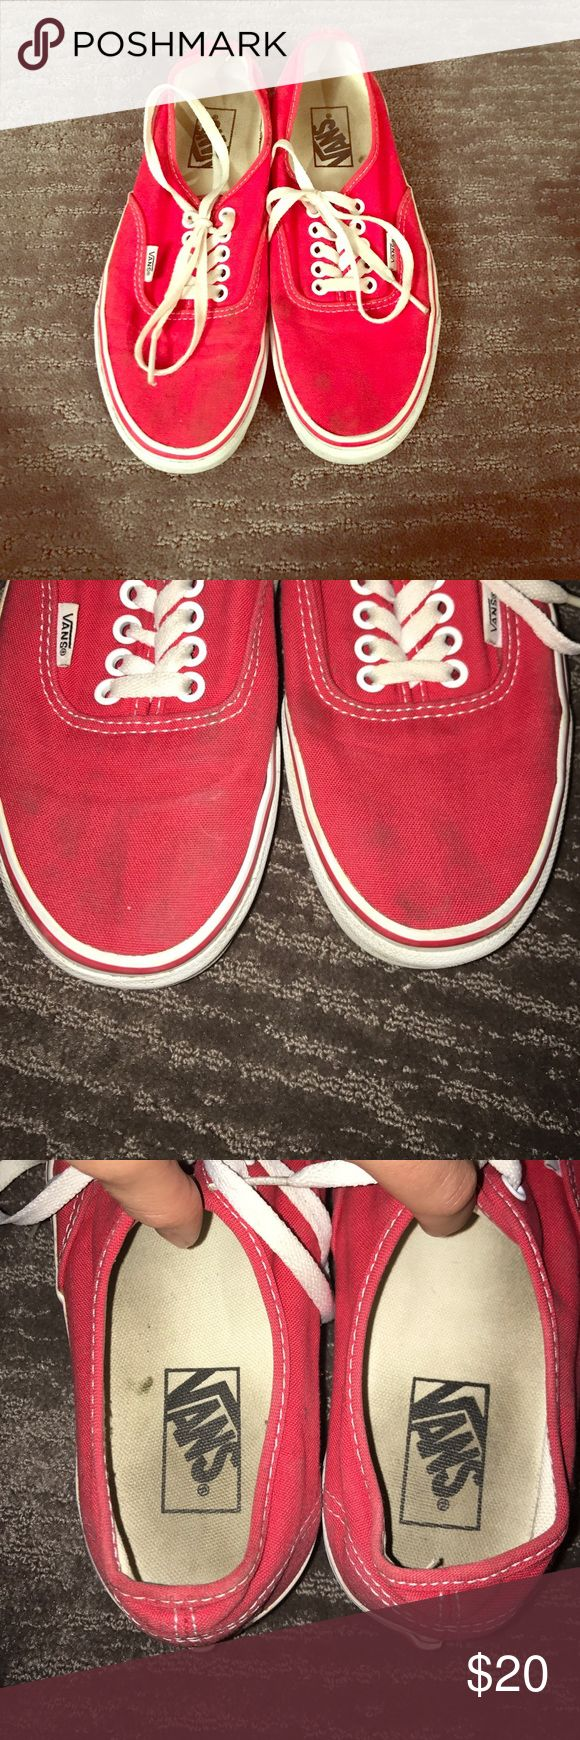 Red Classic Lo Pro Vans Worn and loved classic red vans. They have been freshly washed, but do have some old muss stains on the toe area. These are super comfy and go with anything! Vans Shoes Sneakers